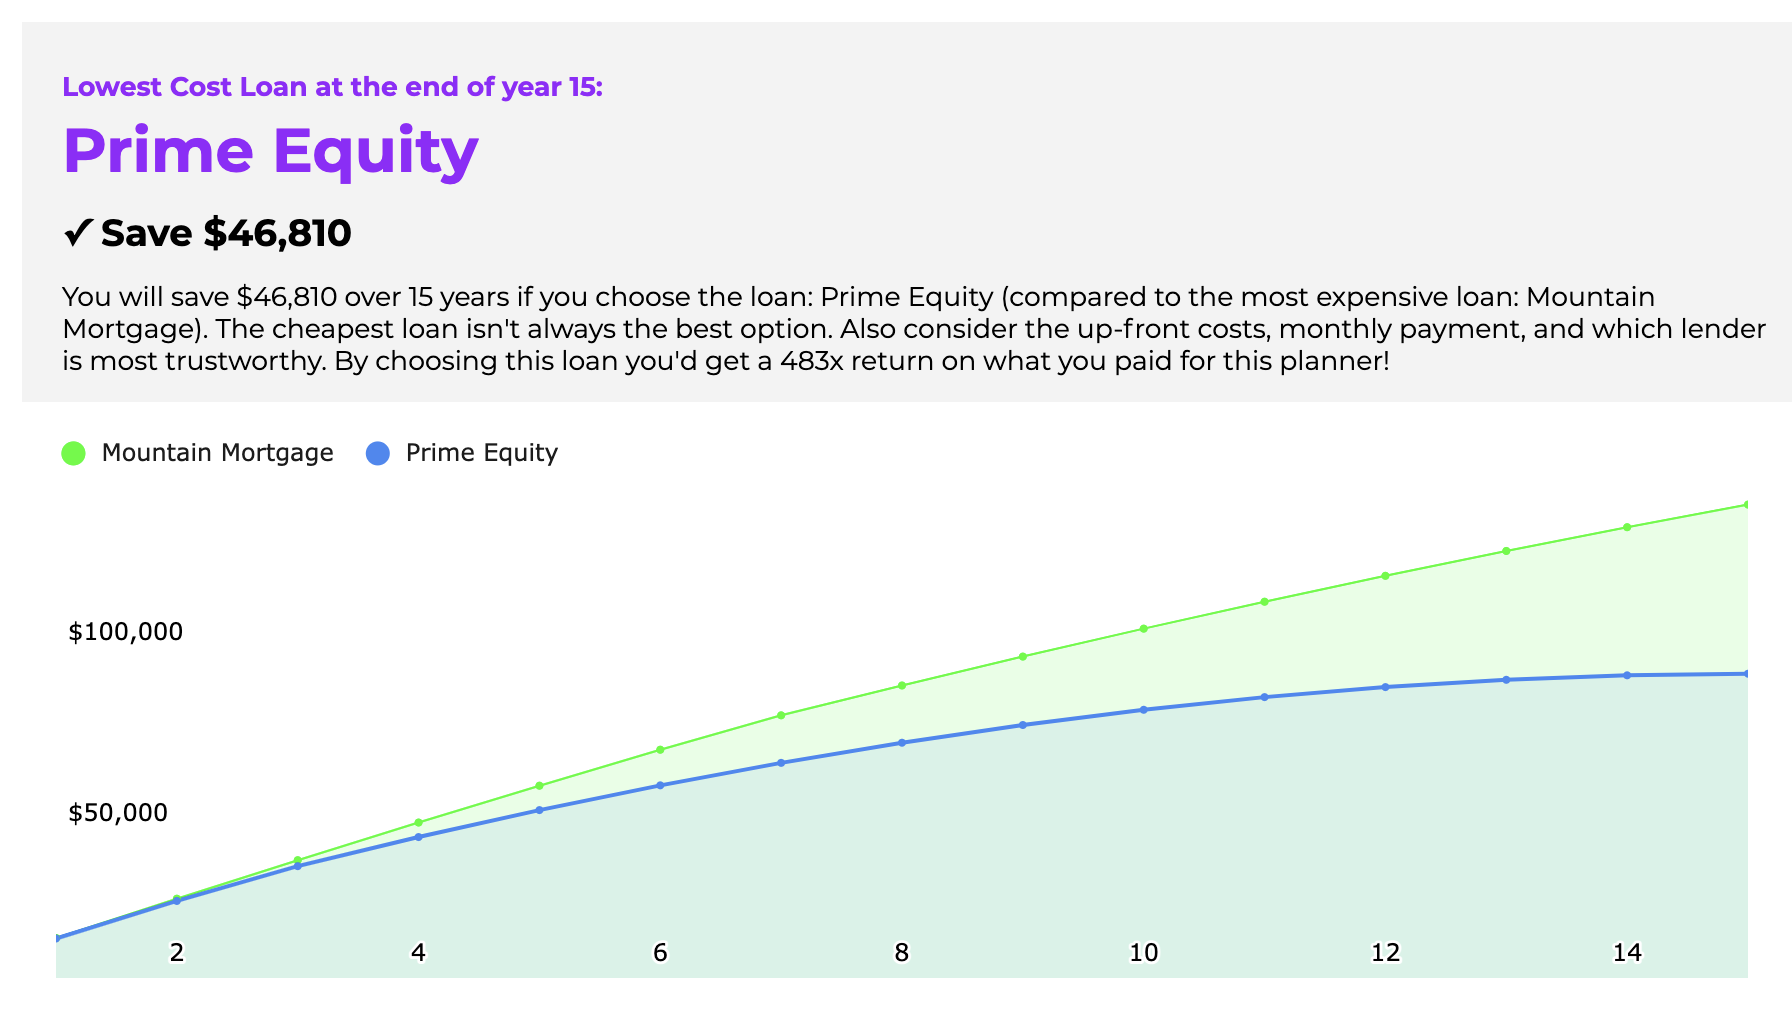 Preview of the Win The House You Love Planner application showing a lowest cost loan calculator